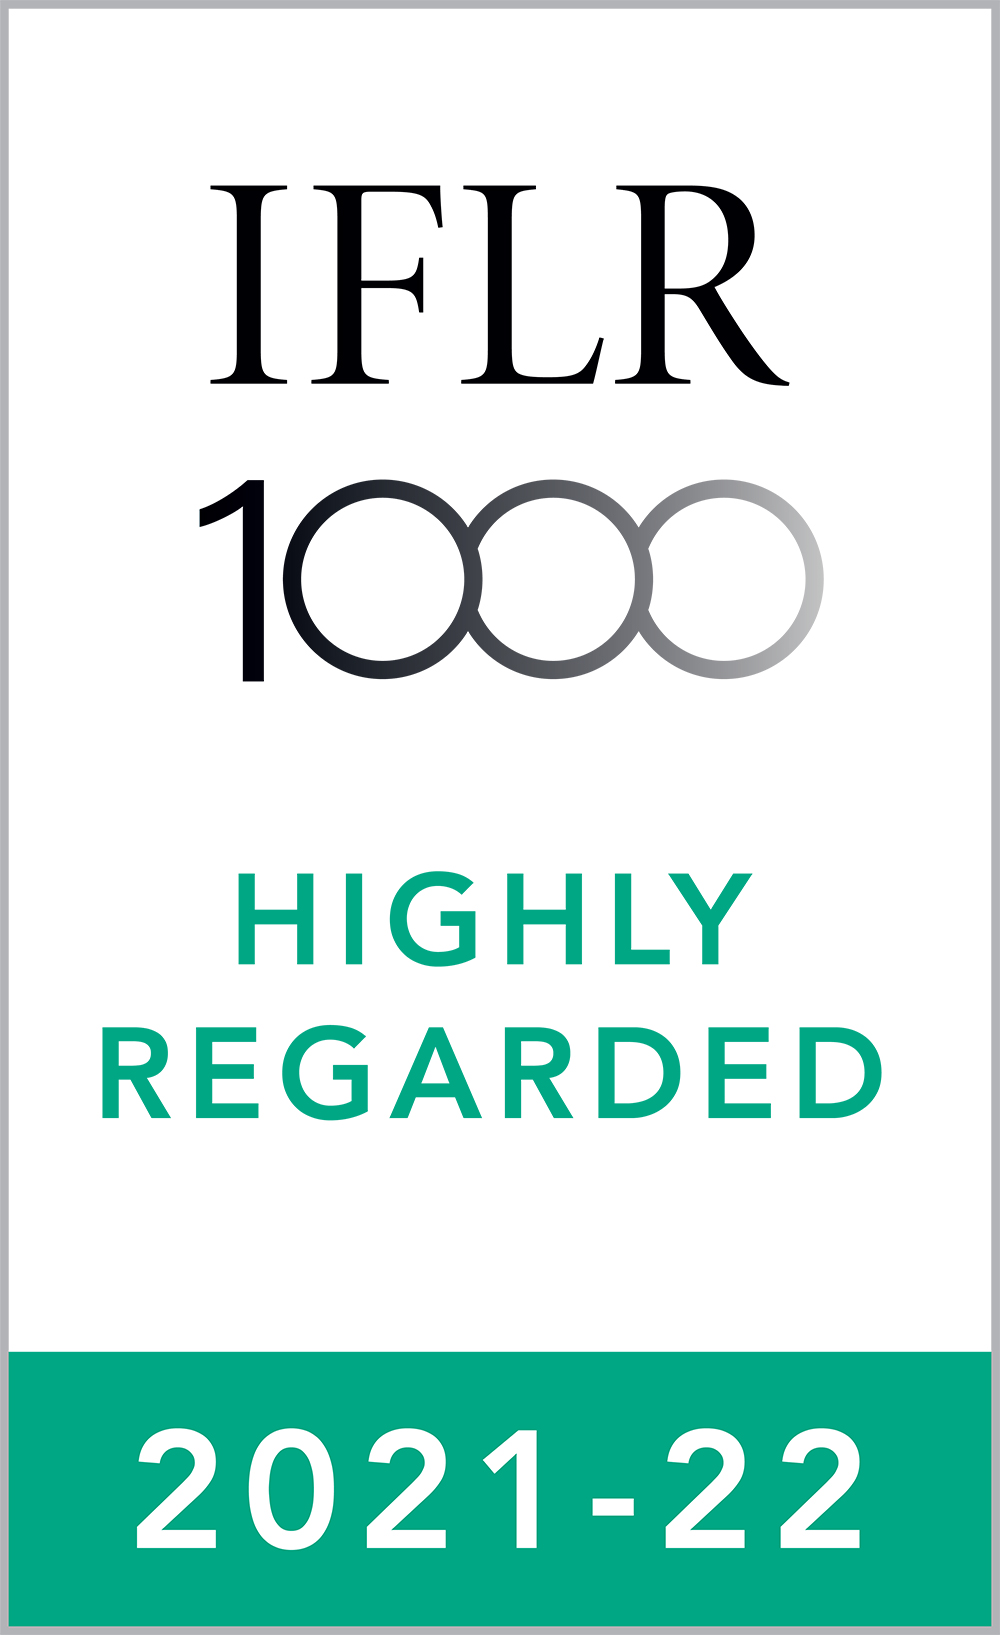 Highly Regarded Leading Lawyer in Capital markets: Equity, M&A, Private equity and Restructuring and insolvency practices by IFLR1000, 2021-22